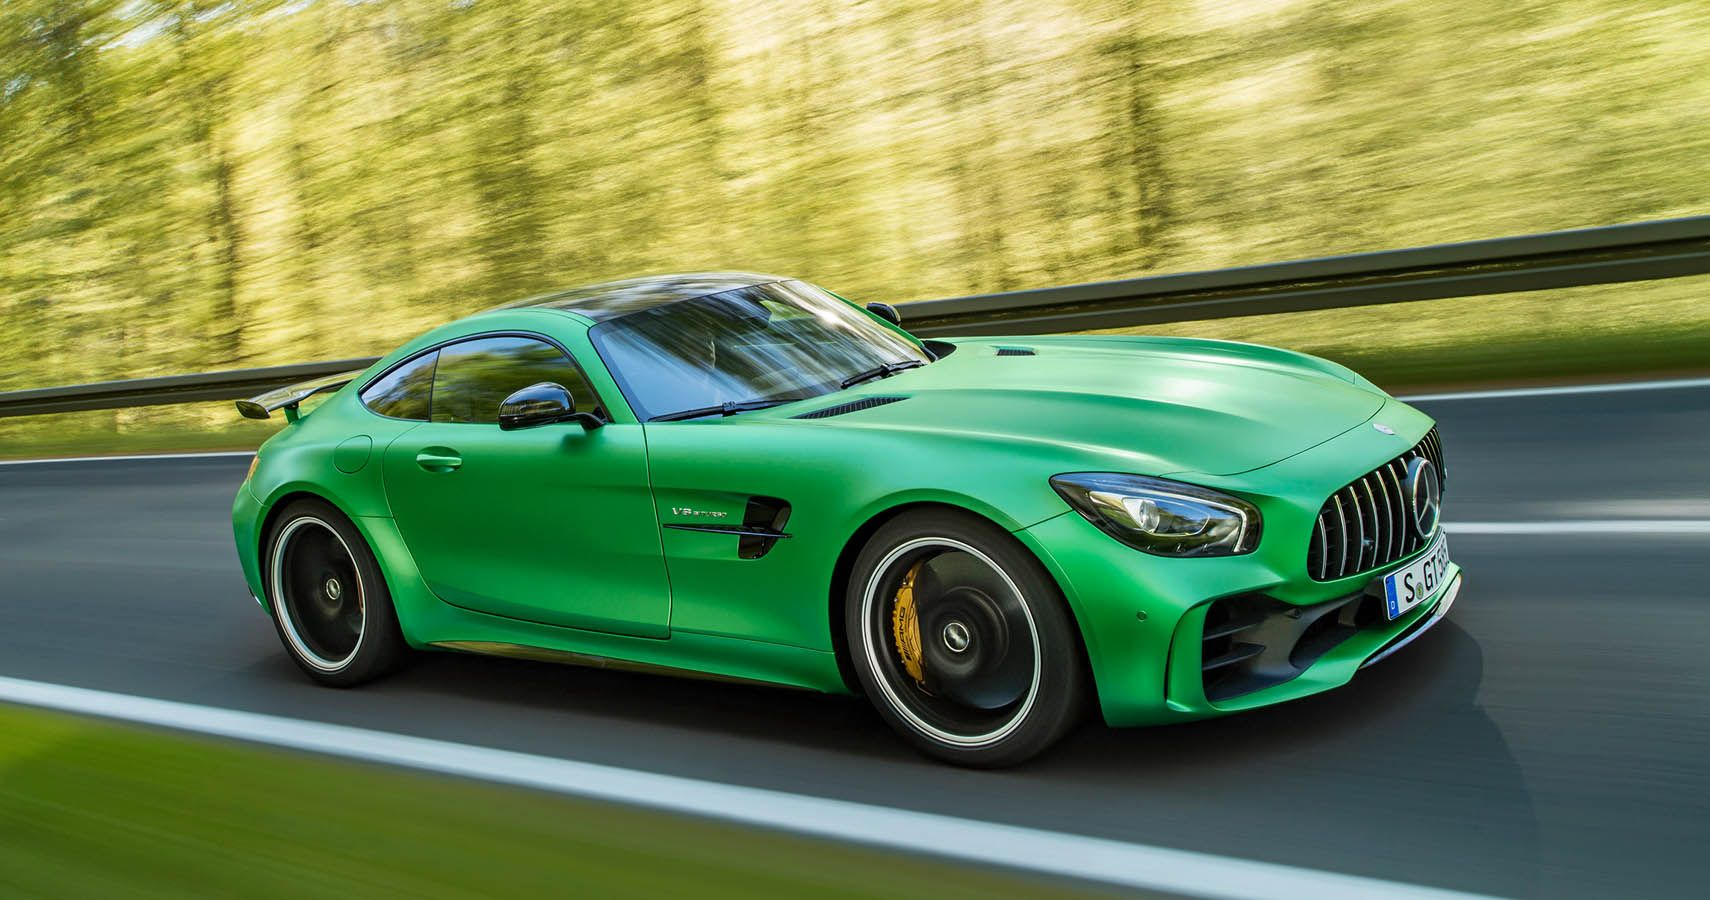 An Inside Look At The History Of Mercedes-AMG | HotCars